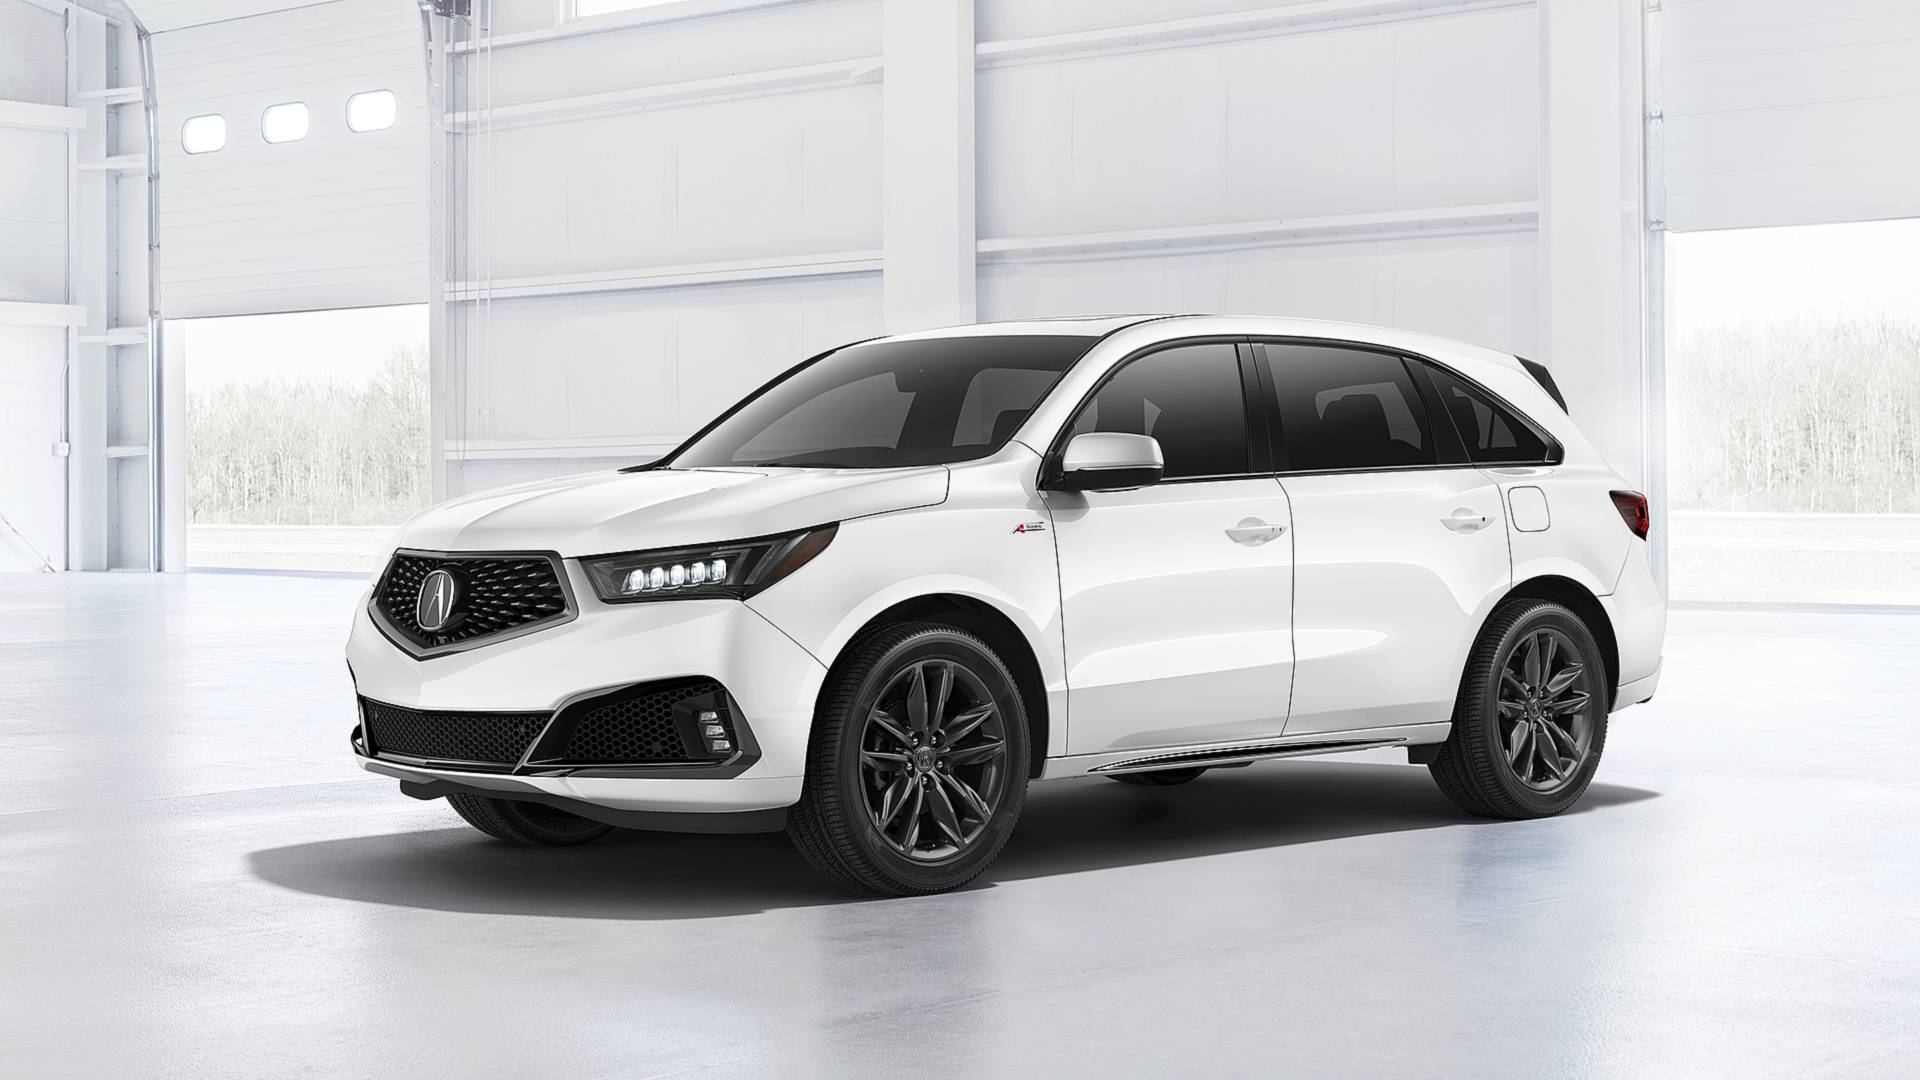 Acura Mdx Interior >> 2019 Acura Mdx Debuts With Nicer Interior Sporty A Spec Trim